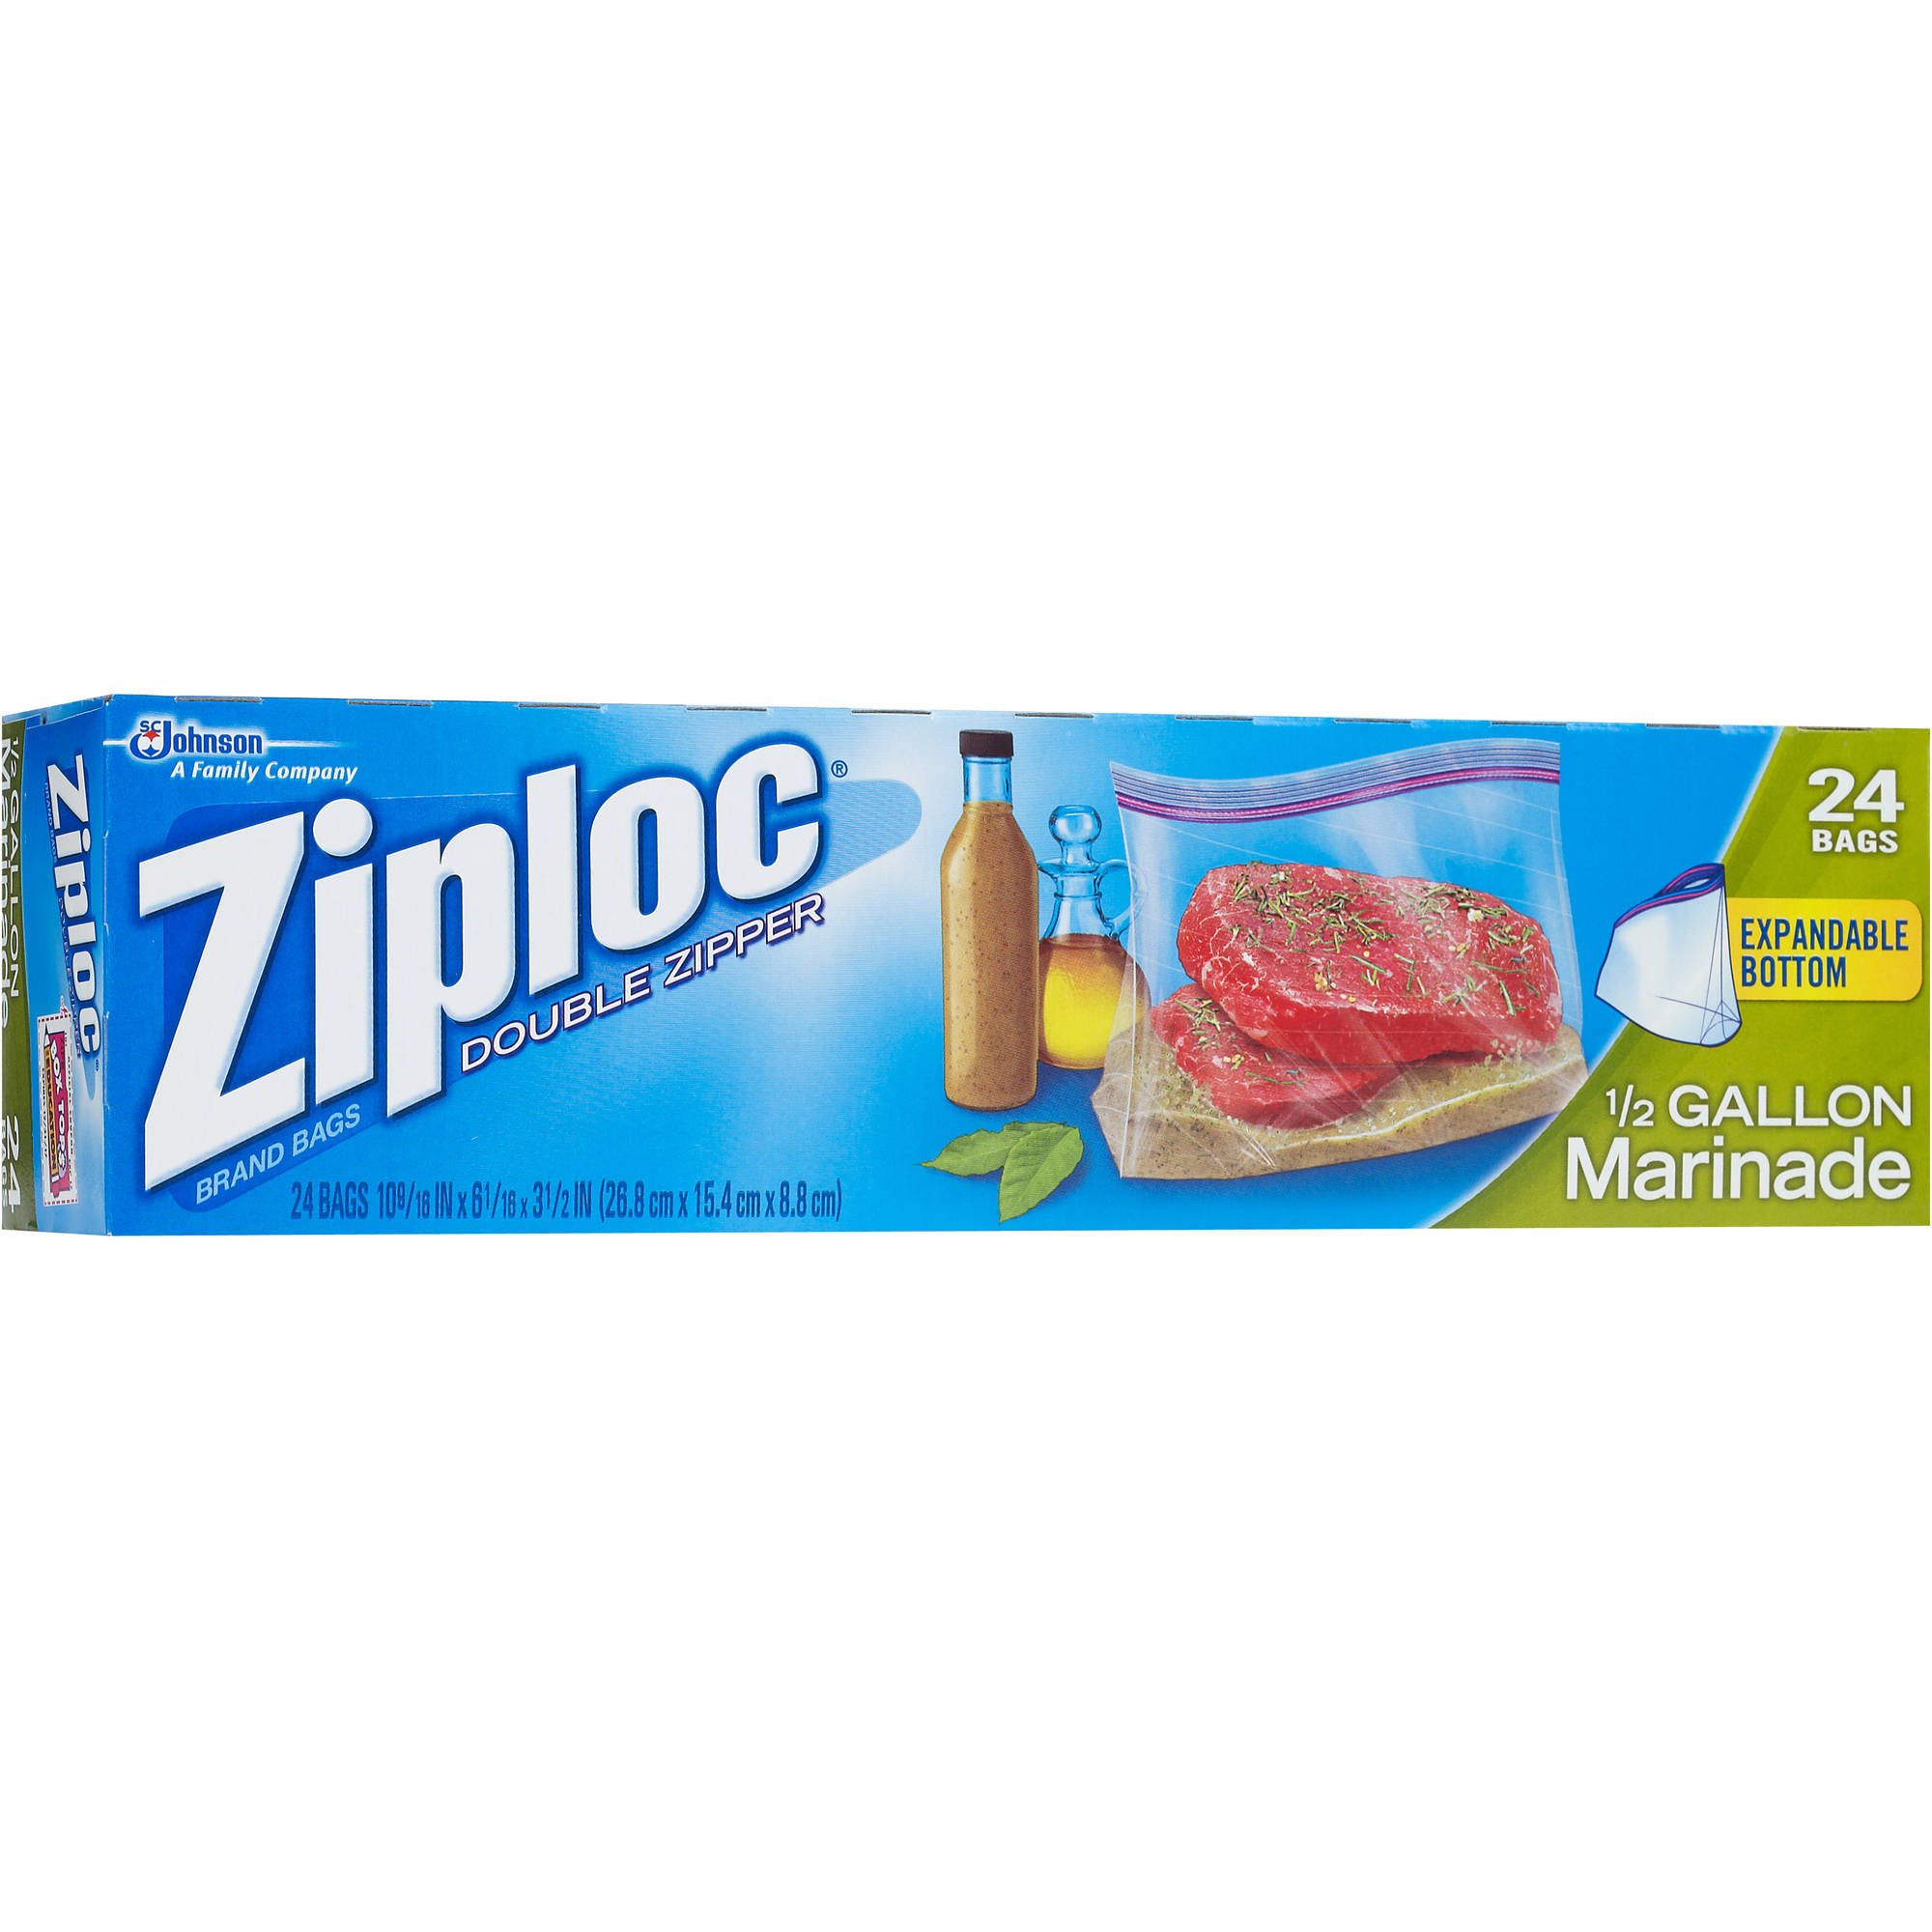 Ziploc All Purpose Marinade Bags, 1/2 Gallon, 24 Ct